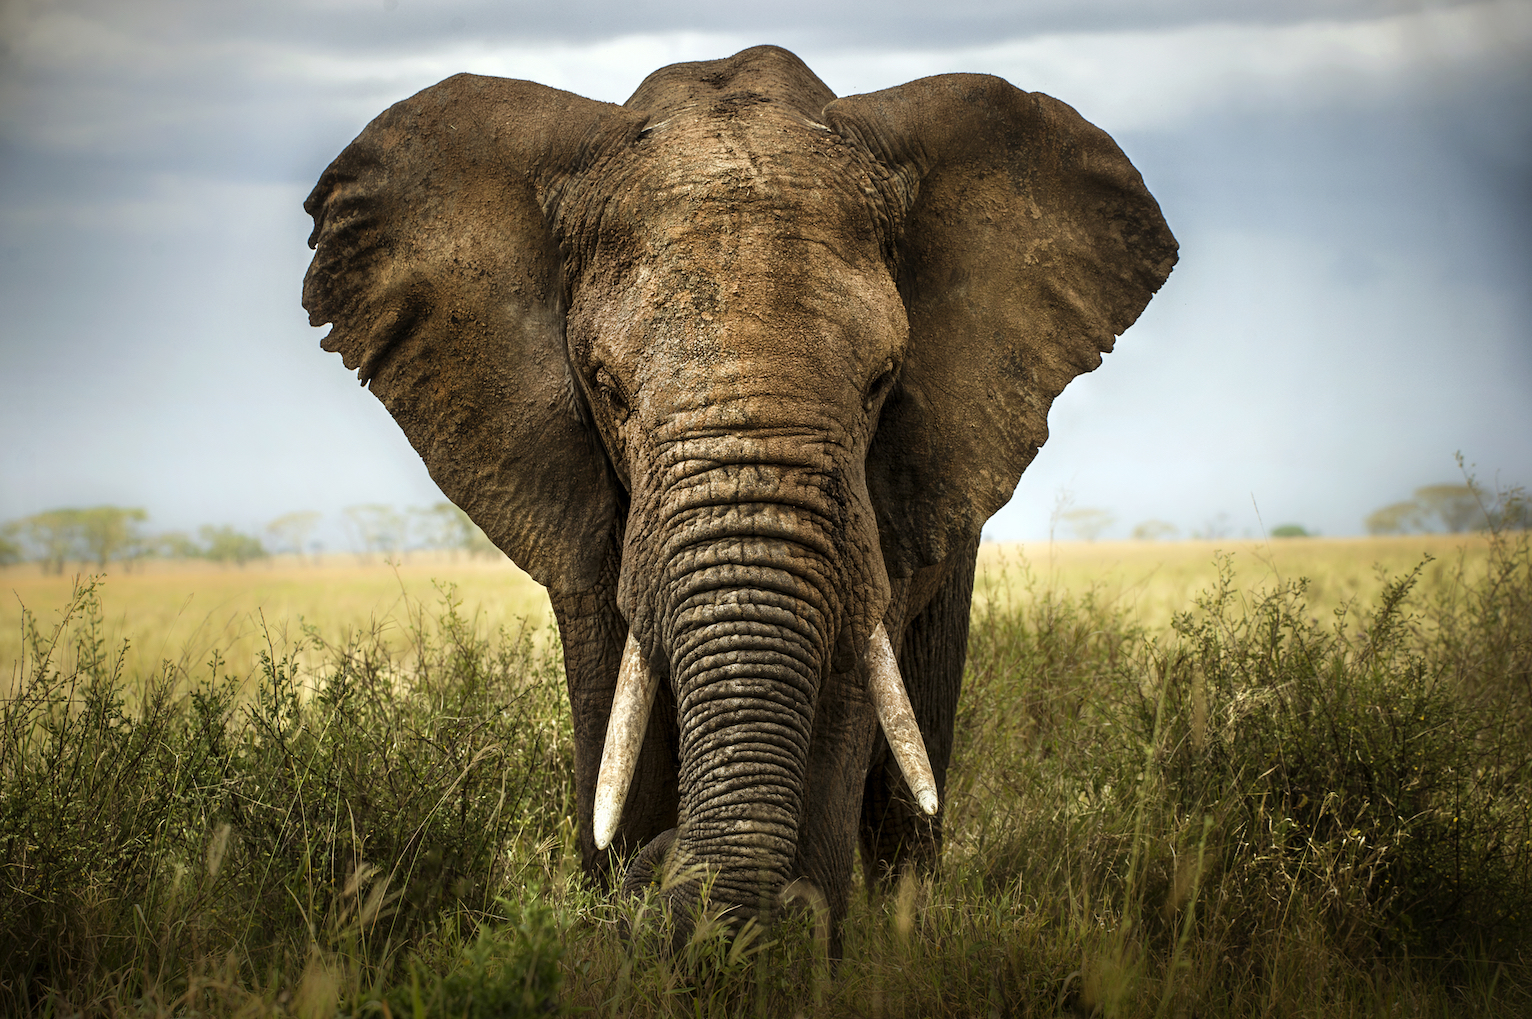 Authorities in Central Africa have cracked down on elephant poaching. It's shocking how little effect it had on the elephant population.